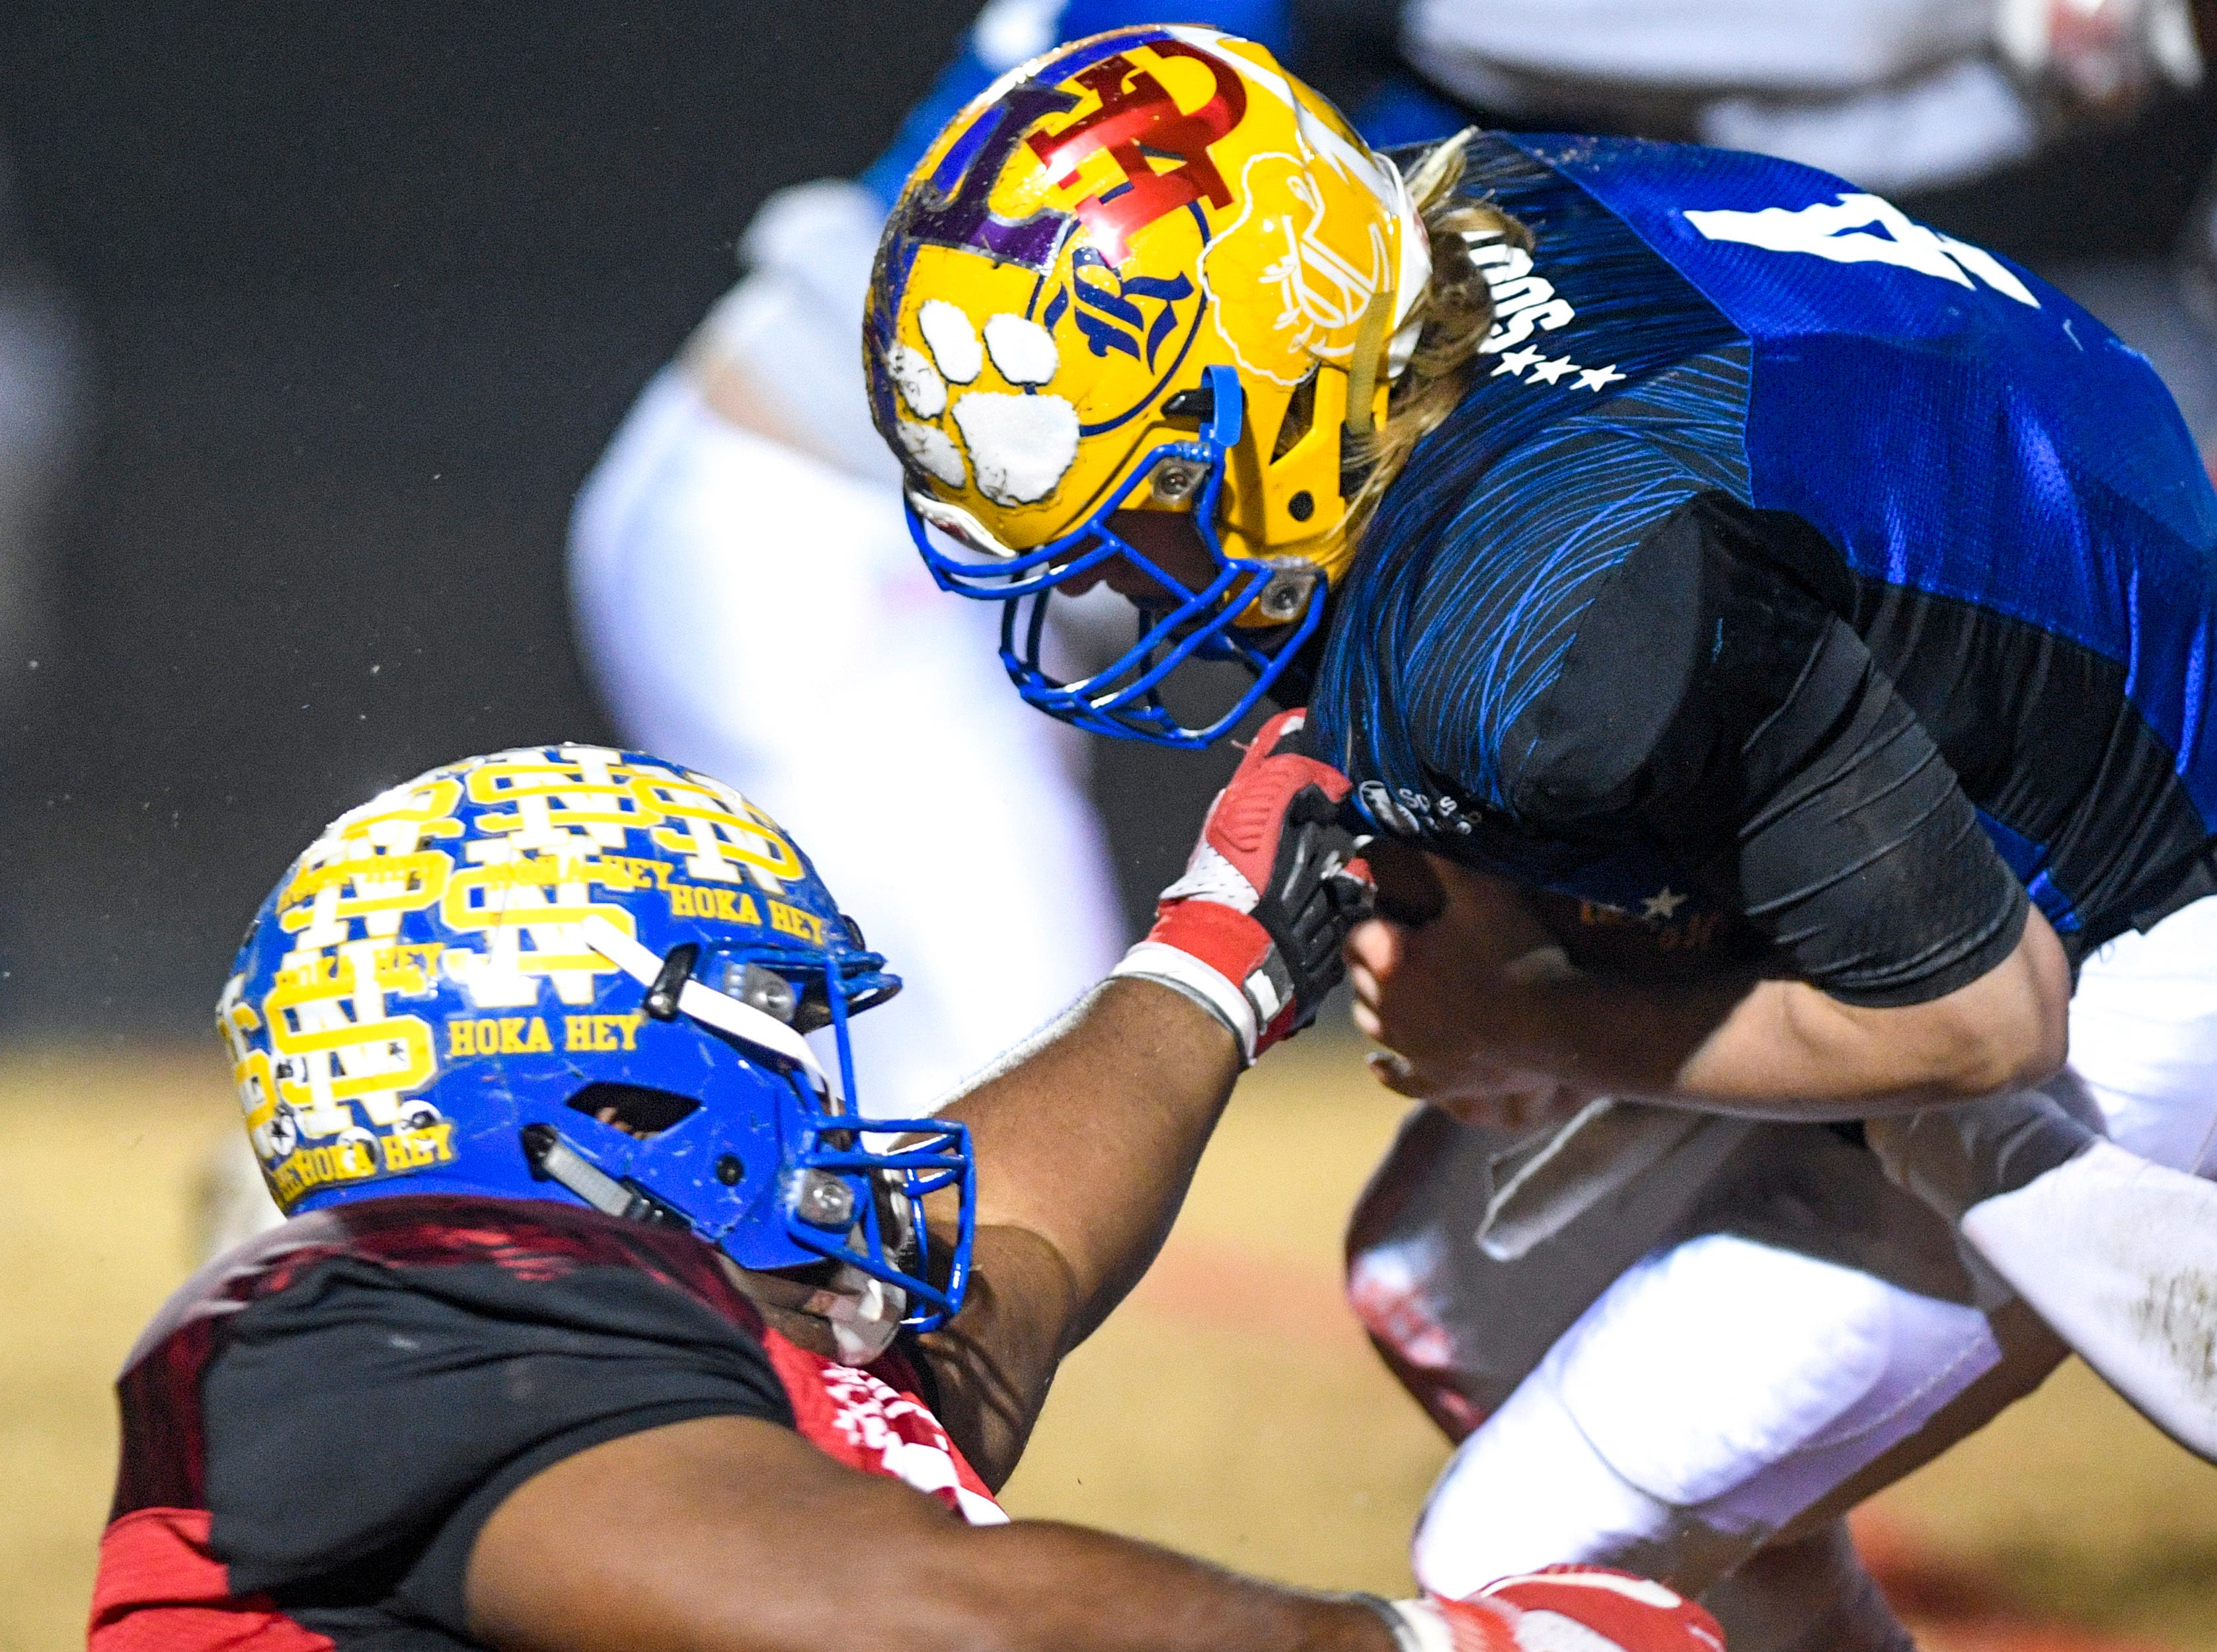 North Side's Kevin Albea II (70) grabs and helps tackle Riverside's Stone Frost (4) during the West Tennessee All-Star football game at University School of Jackson in Jackson, Tenn., on Friday, Dec. 7, 2018.